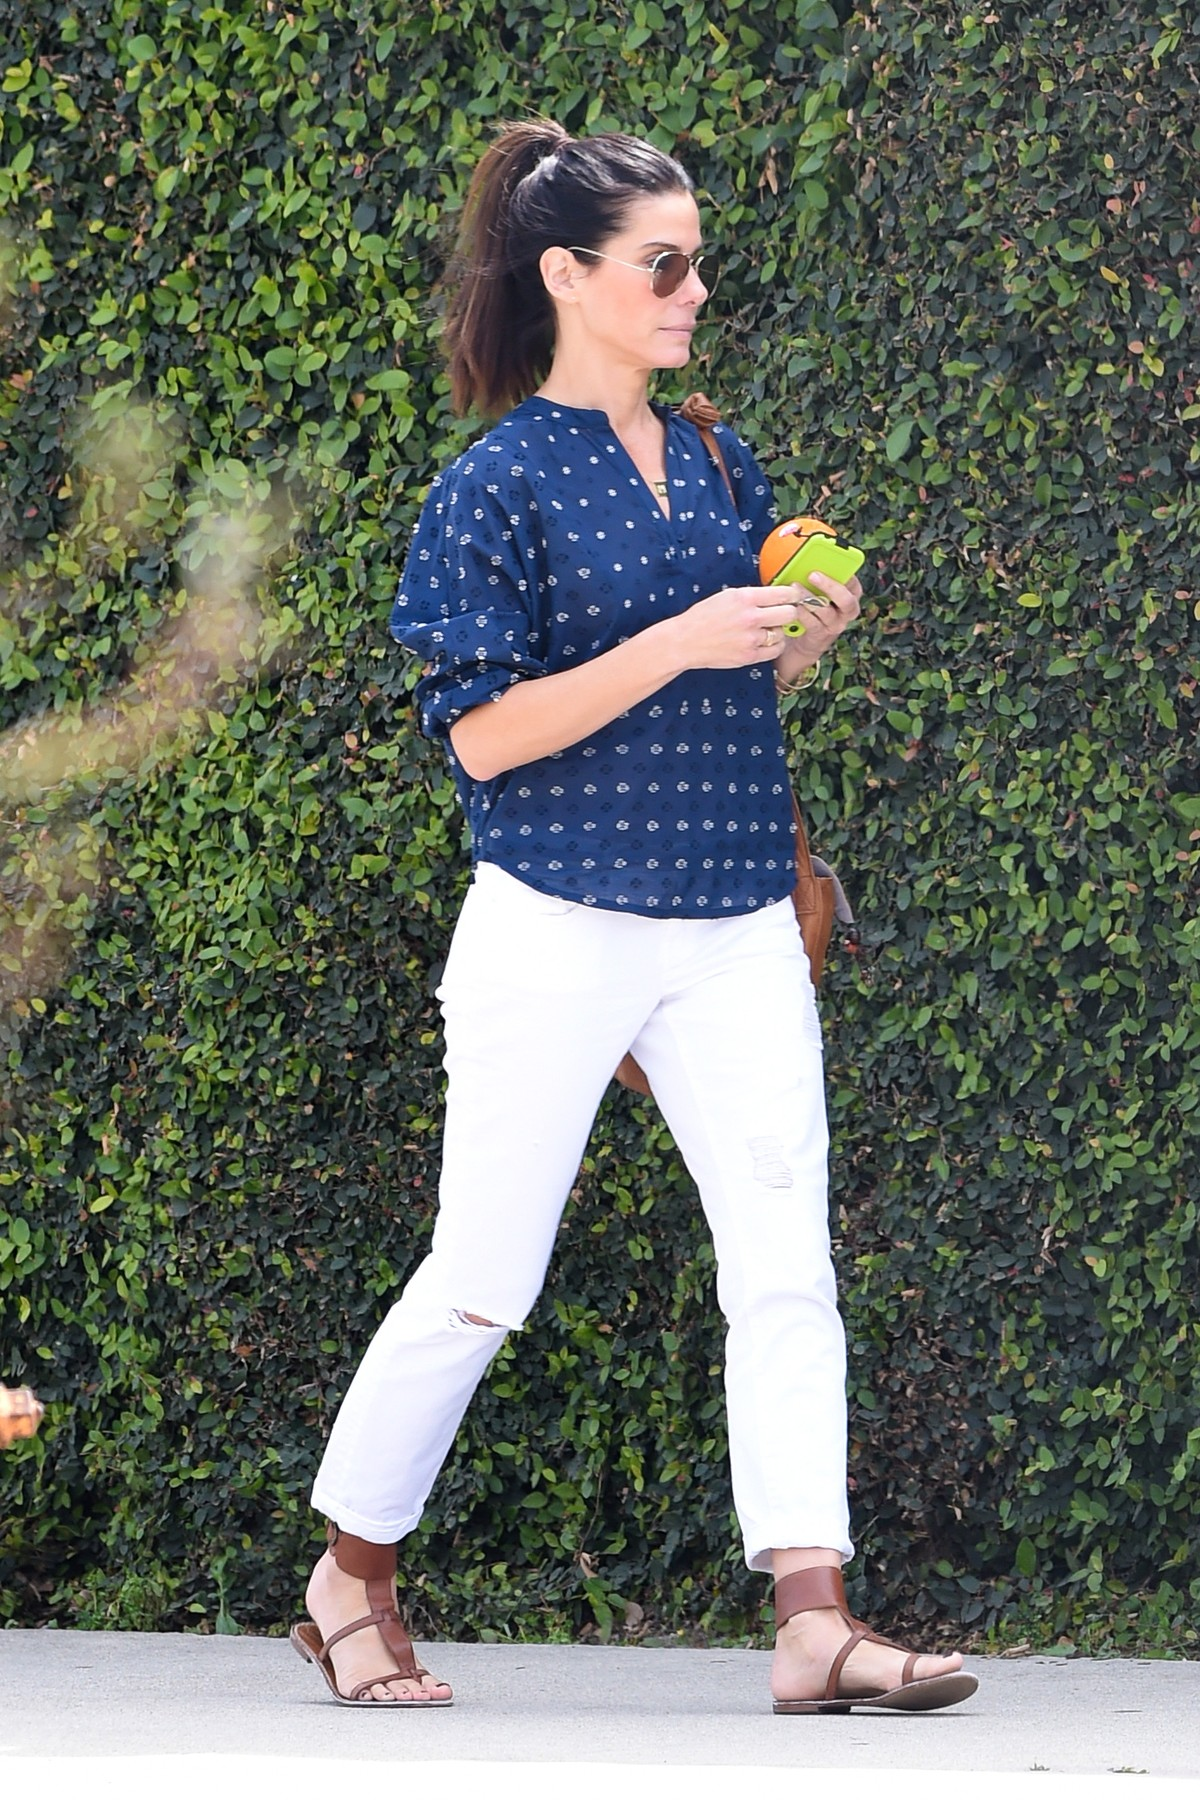 *EXCLUSIVE* Los Angeles, CA - Actress and busy mother Sandra Bullock spent the day at a Sound Studio where she kept herself busy doing voice-over work for her character Scarlett Overkill for the upcoming animation film 'The Minions', she kept her look simple with a navy blue and white polka dot blouse, white trousers and strappy sandals matching her brown leather tote bag.           April 10, 2014,Image: 190114958, License: Rights-managed, Restrictions: NO Brazil,NO Brazil, Model Release: no, Credit line: AKM Images / Backgrid USA / Profimedia